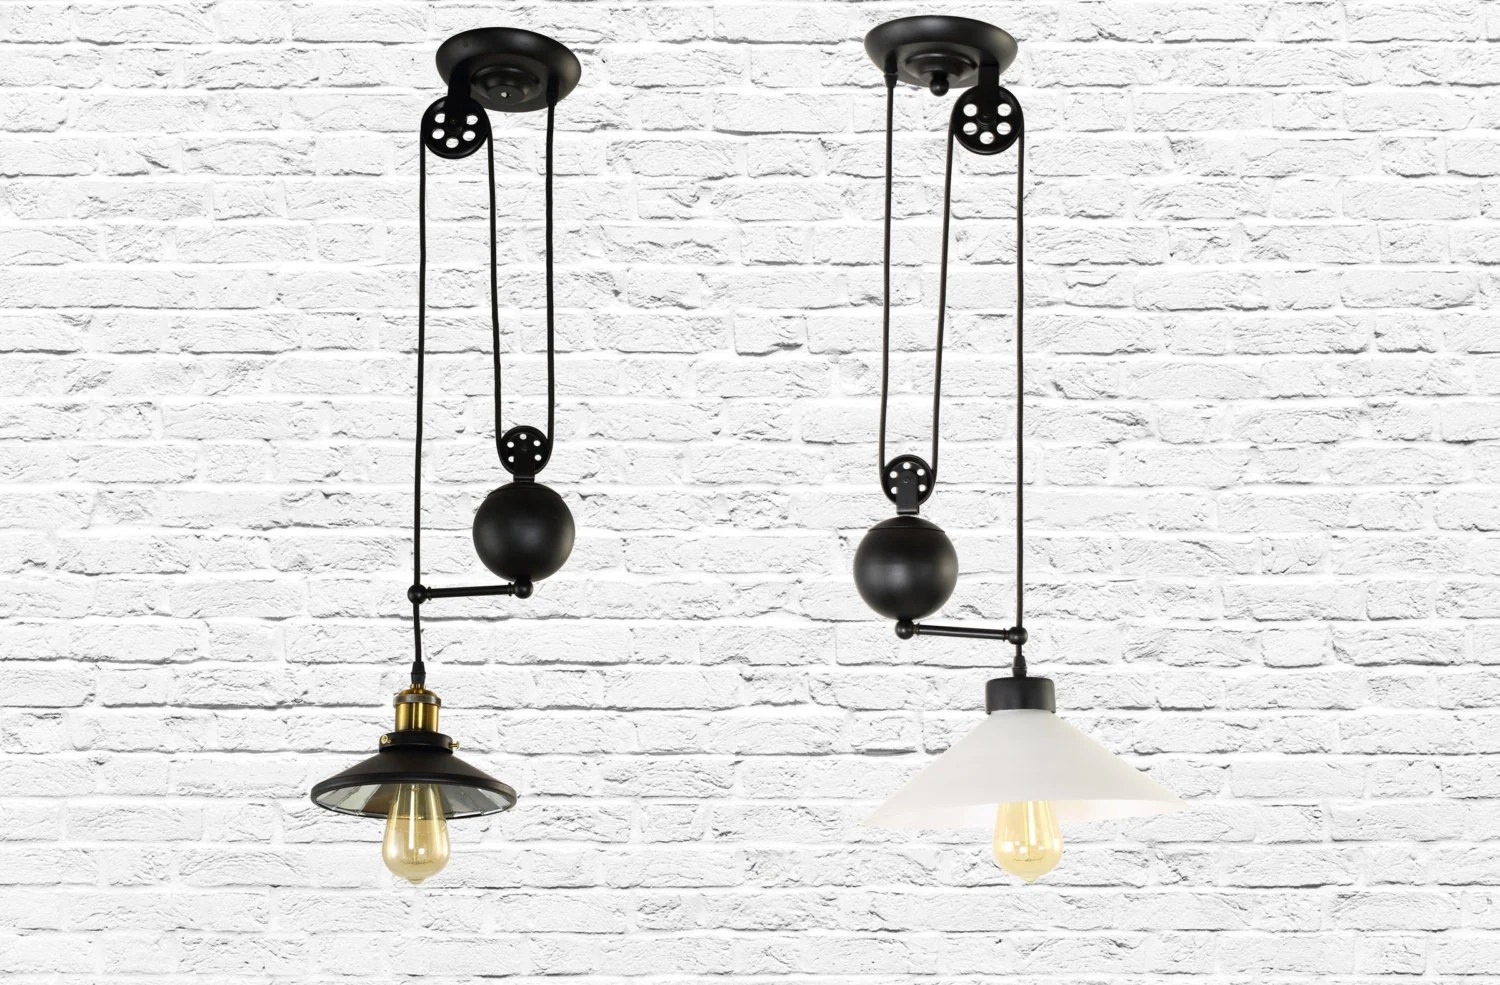 Iron Pendant Light Fixture With Pulley Vintage Industrial